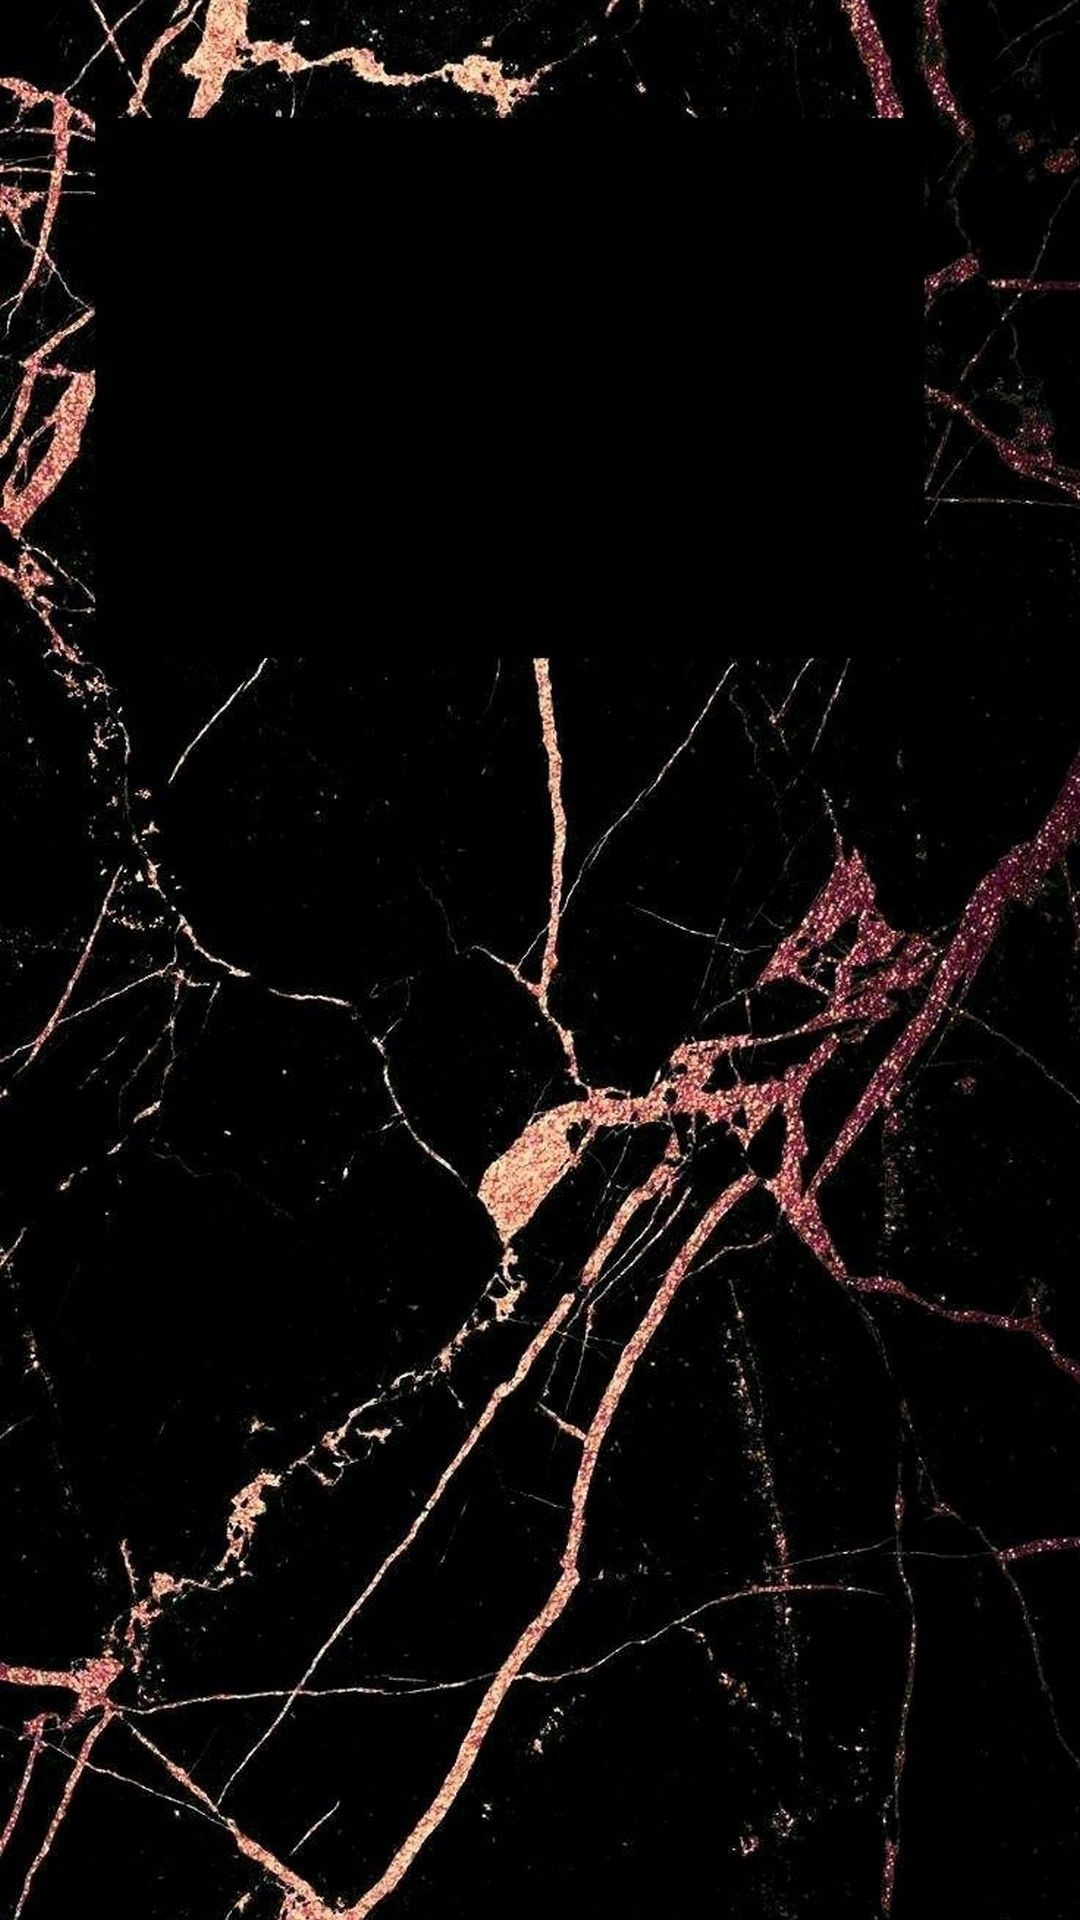 Marble Rose Gold Iphone Background In 2020 Gold Wallpaper Iphone Rose Gold Wallpaper Iphone Gold Marble Wallpaper